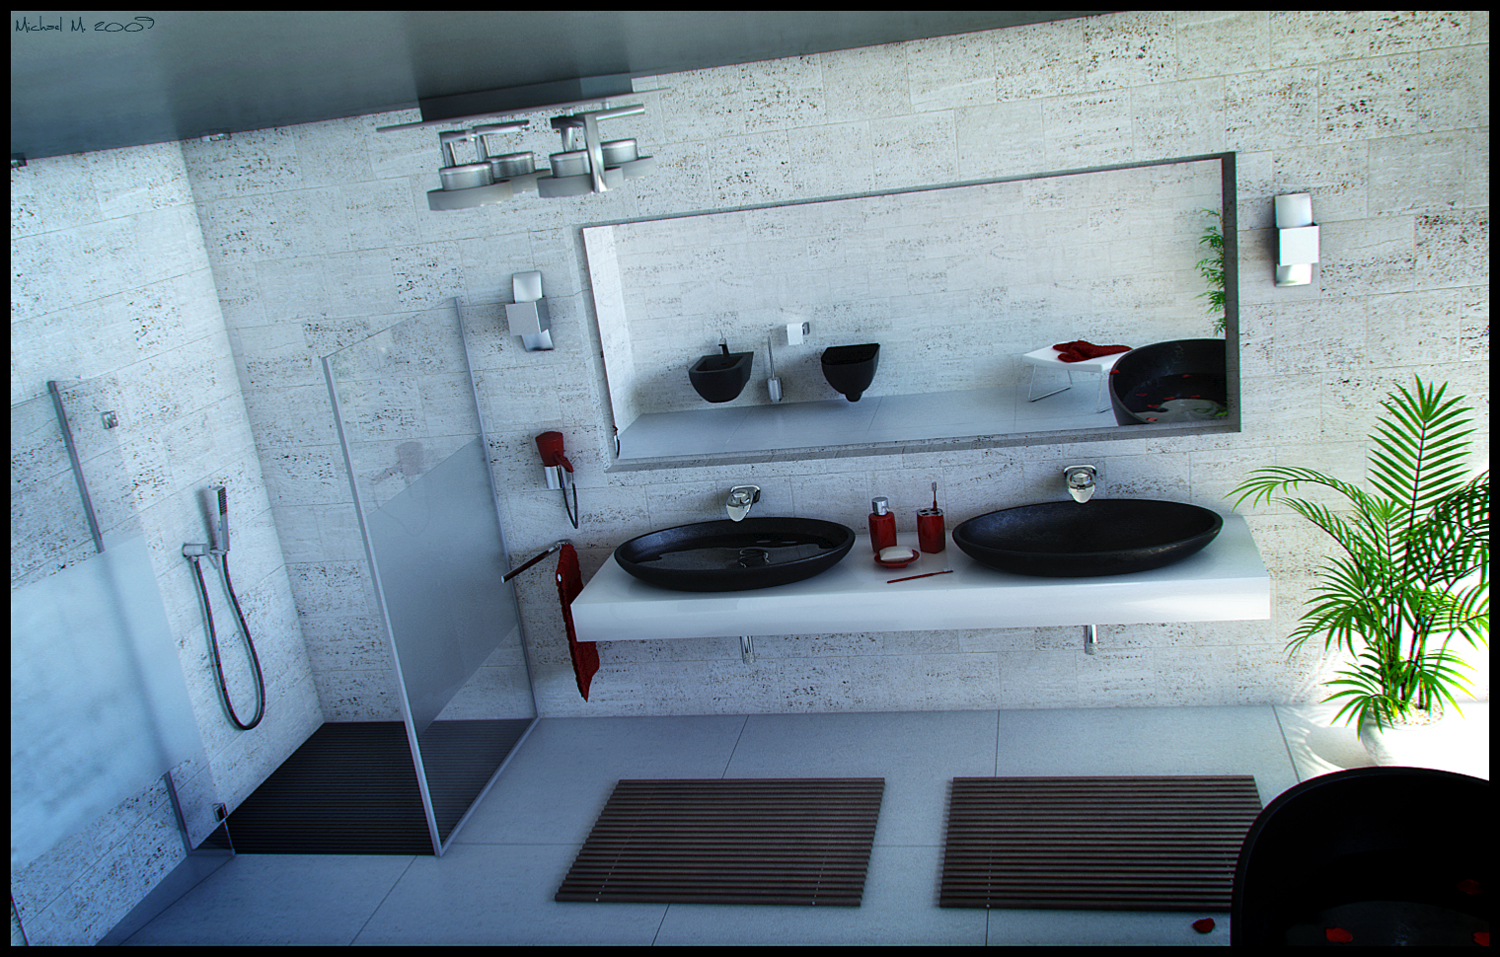 Inspiring Bathroom Designs For The Soul